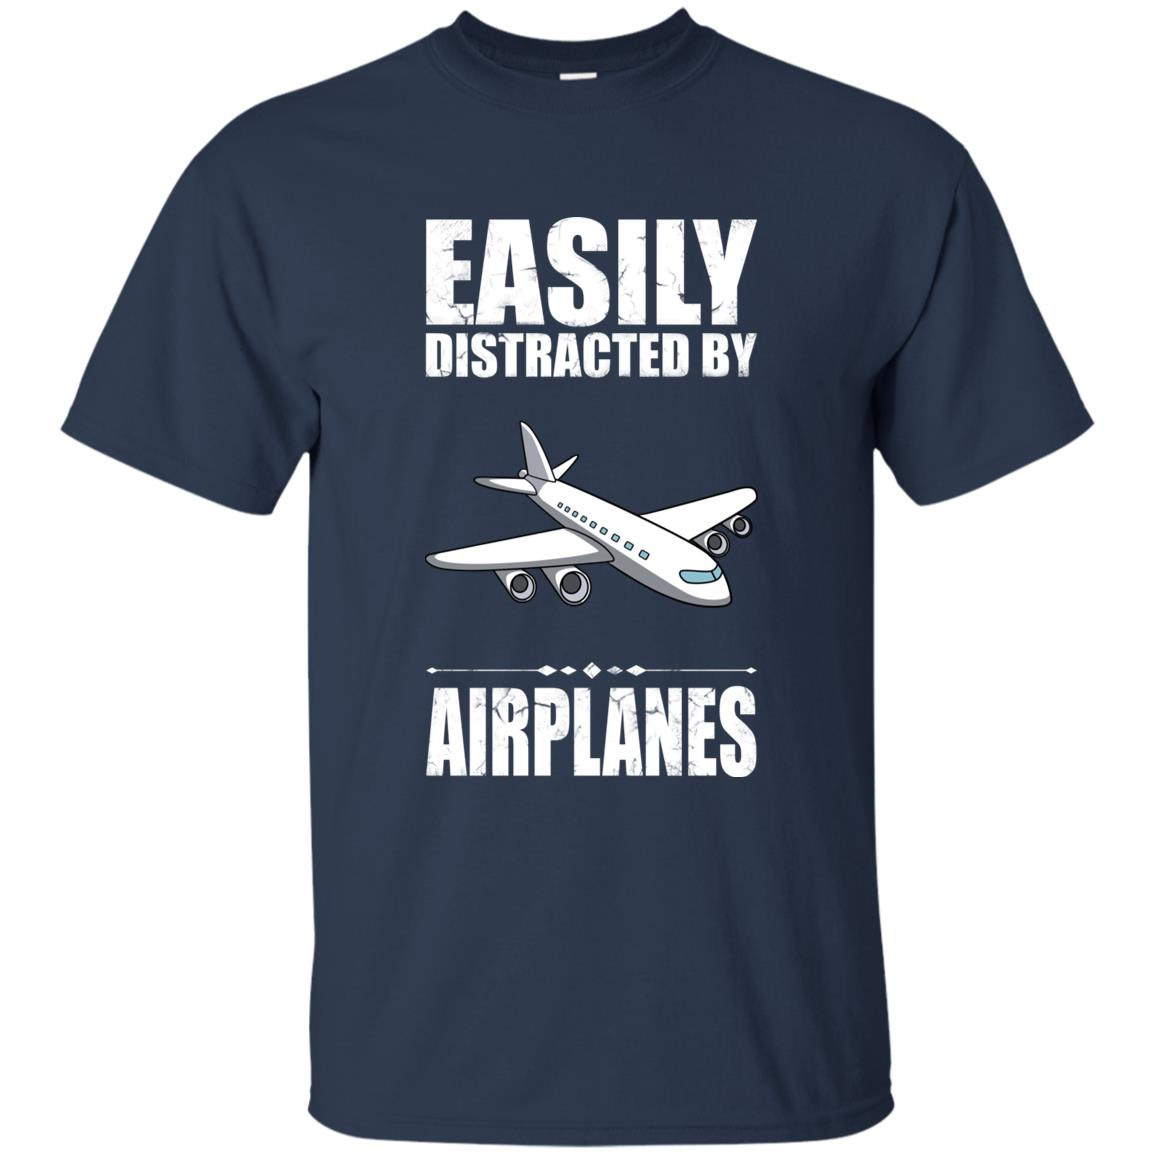 Easily Distracted By Airplanes Funny Airplane Gift Unisex Short Sleeve